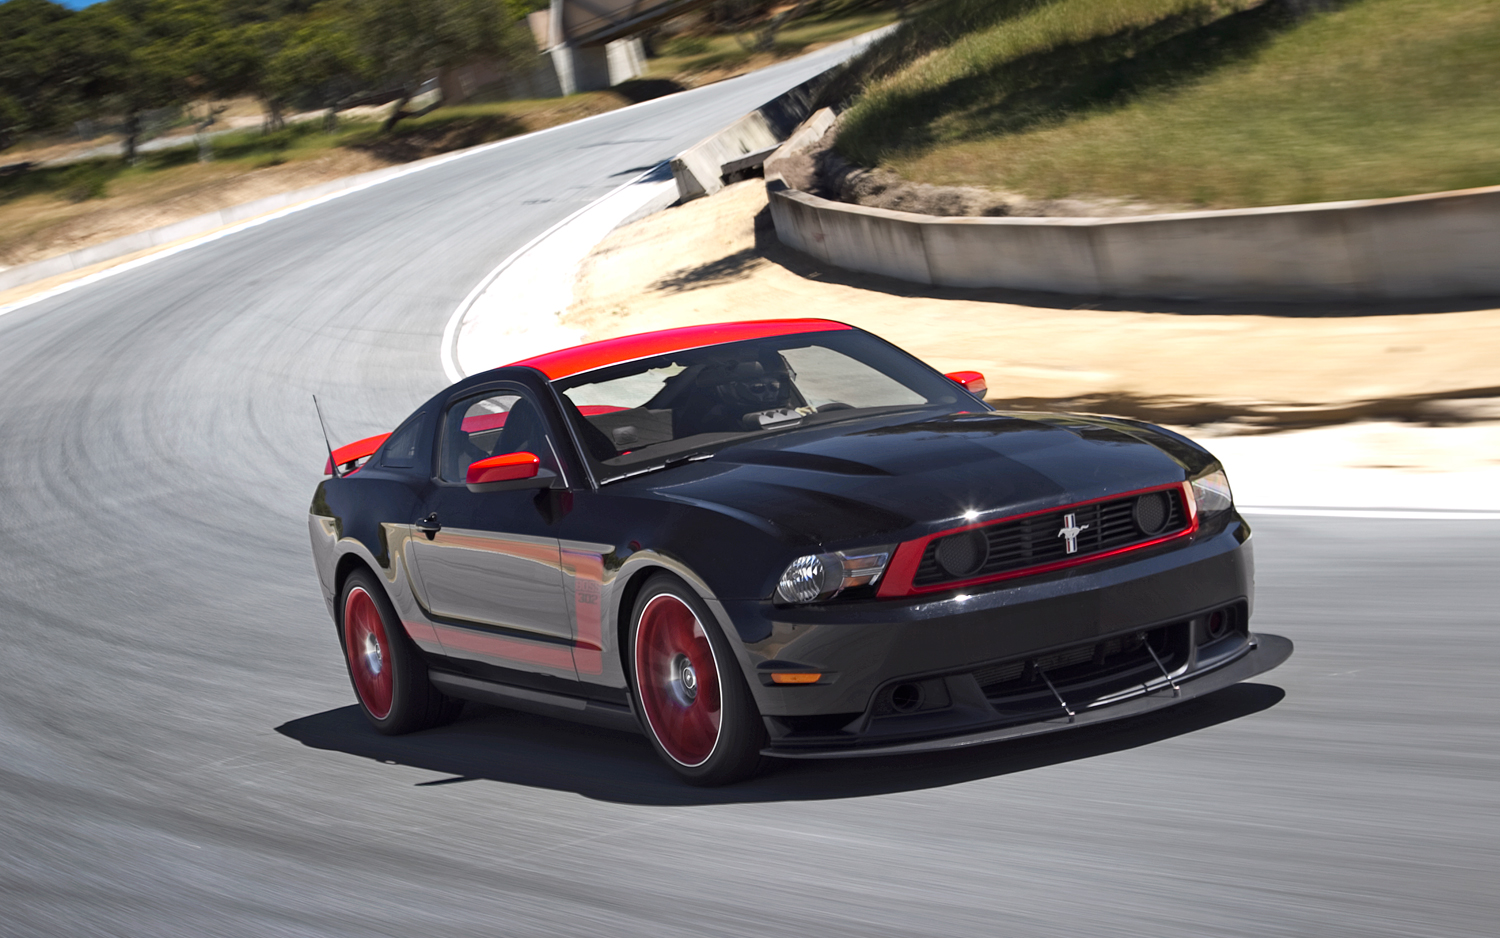 NEWS: Say Goodbye to the Boss 302 Ford Mustang – AmericanMuscle.com Blog